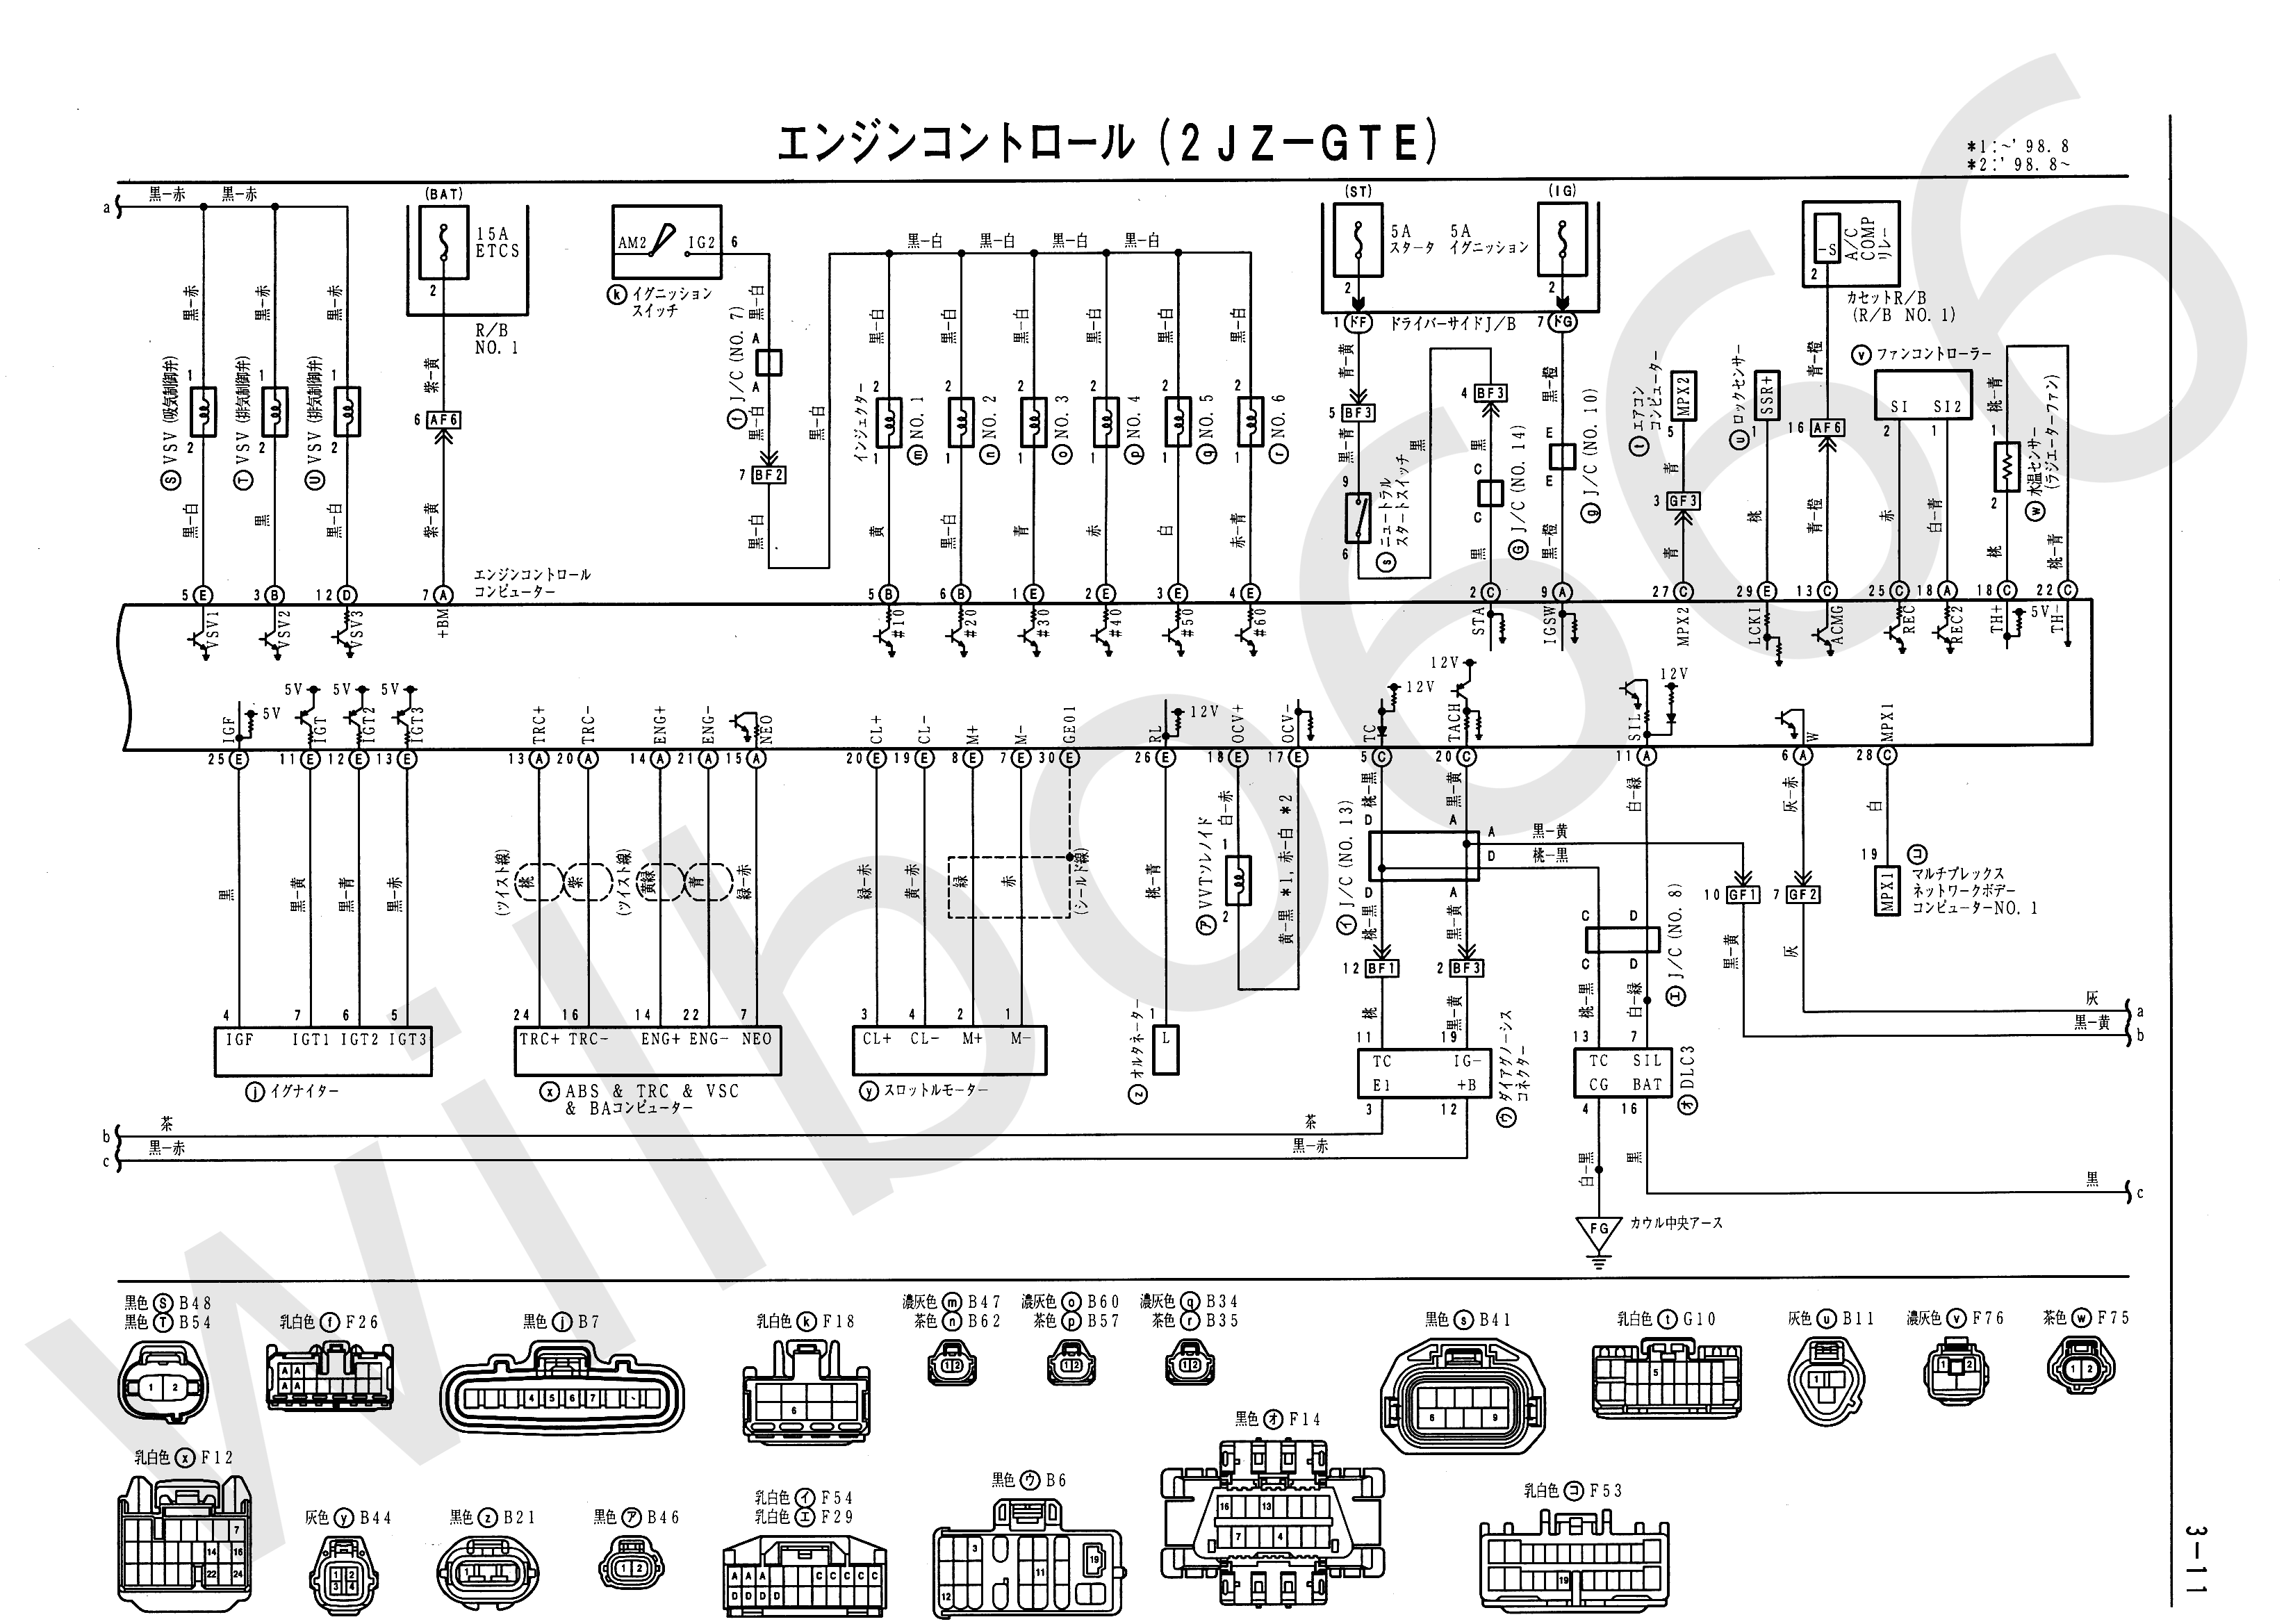 Toyota Ecm Wiring Diagram Schematics Diagrams 89 7mge Engine Wilbo666 2jz Gte Vvti Jzs161 Aristo Rh Pbworks Com Abs Cat Pin